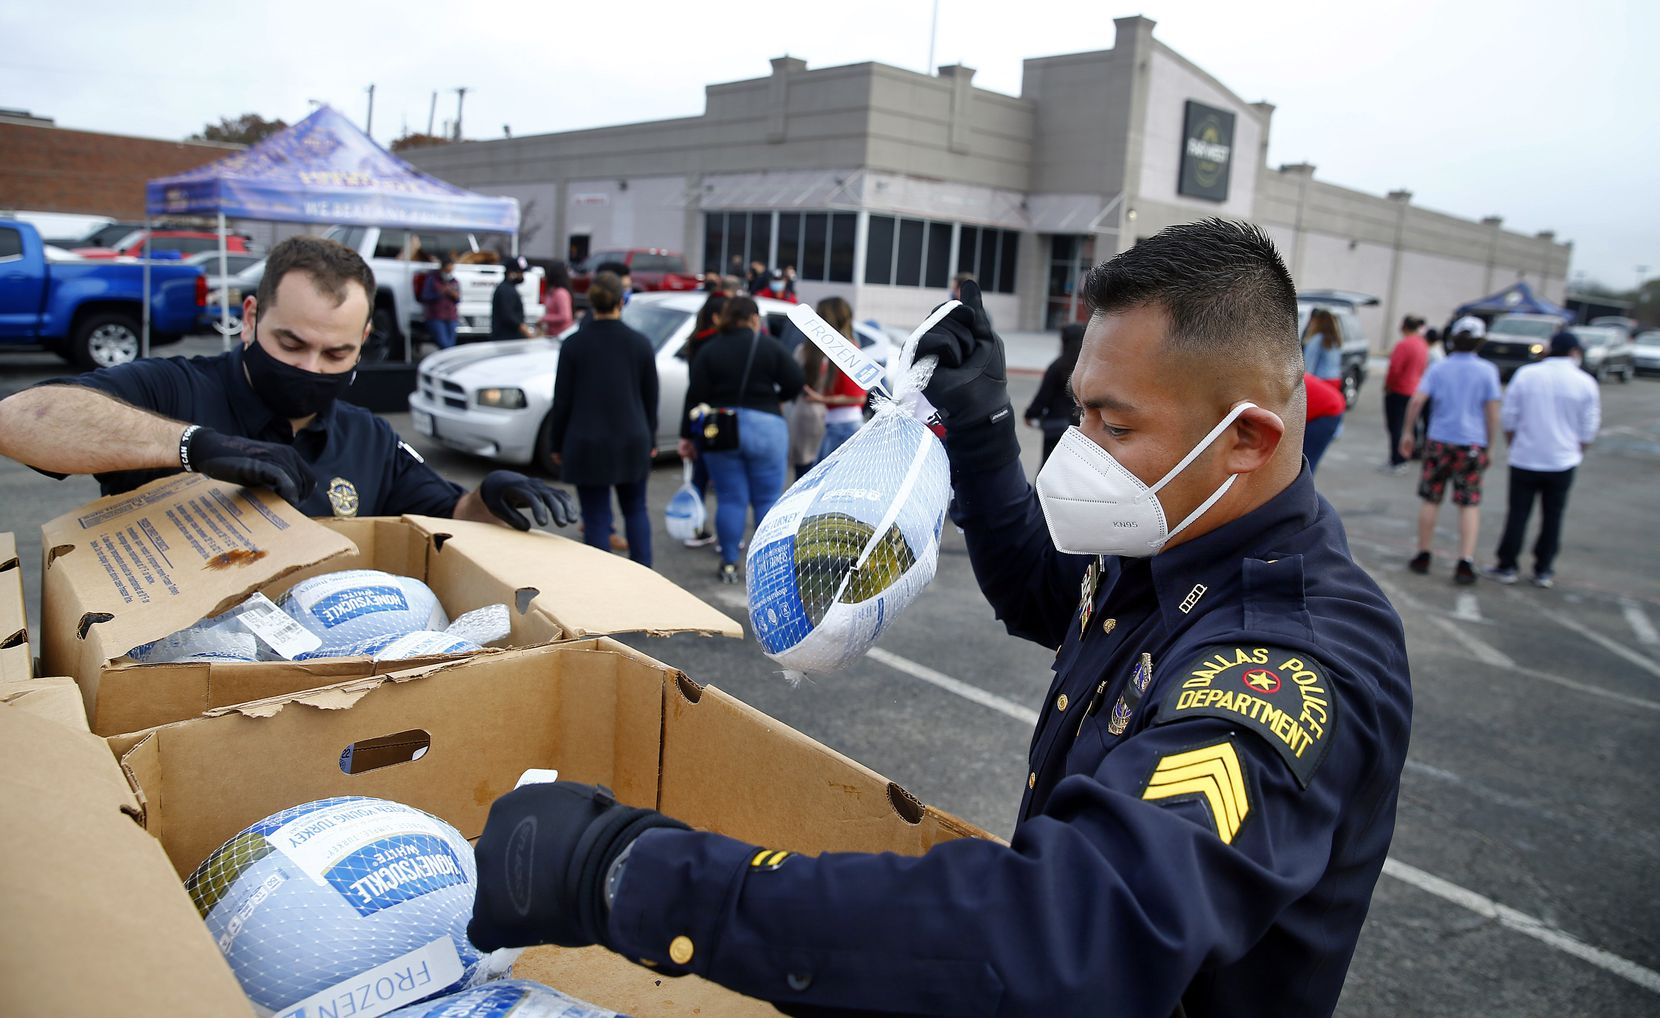 Dallas Police Department UNIDOS outreach team members  Sgt. Eddie Reyes (right) and Lt. Stephen Williams unload frozen turkeys for volunteers from First Untied Bank, Hunger Busters and Canales Furniture during a Thanksgiving turkey handout in Pleasant Grove on Nov. 21 In the last year, the UNIDOS team has grown to have Spanish-speaking officers at every patrol division. The group has been working to build trust between the Latino community and police for the past five years.